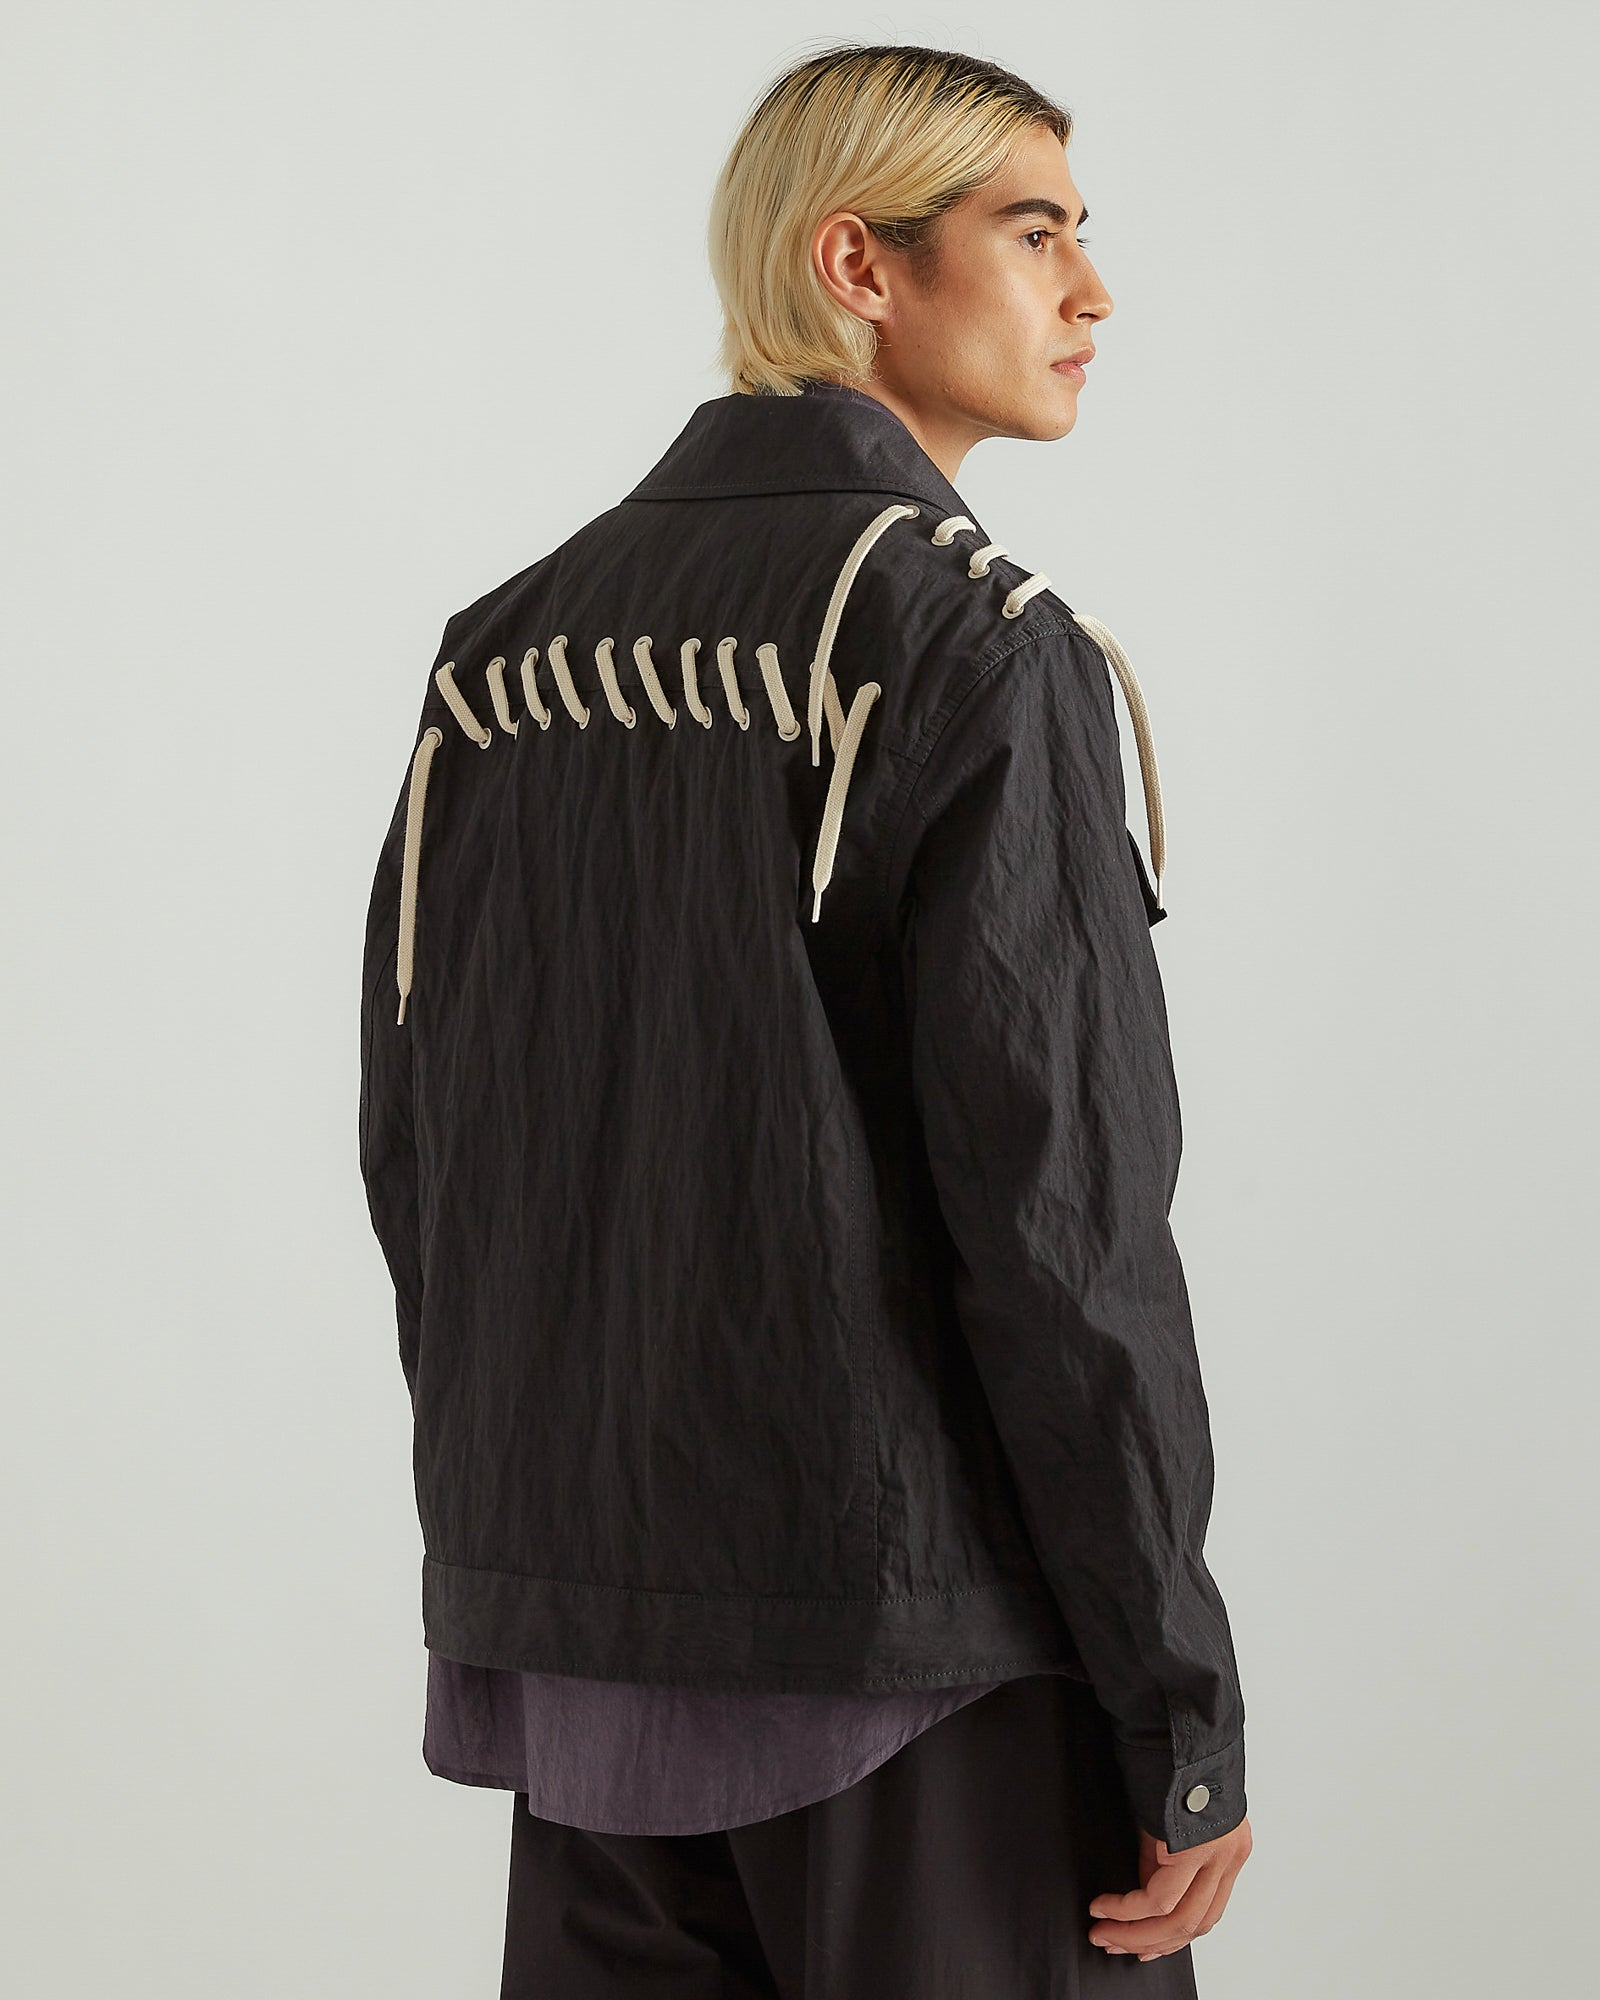 Laced Jacket in Black/Cream